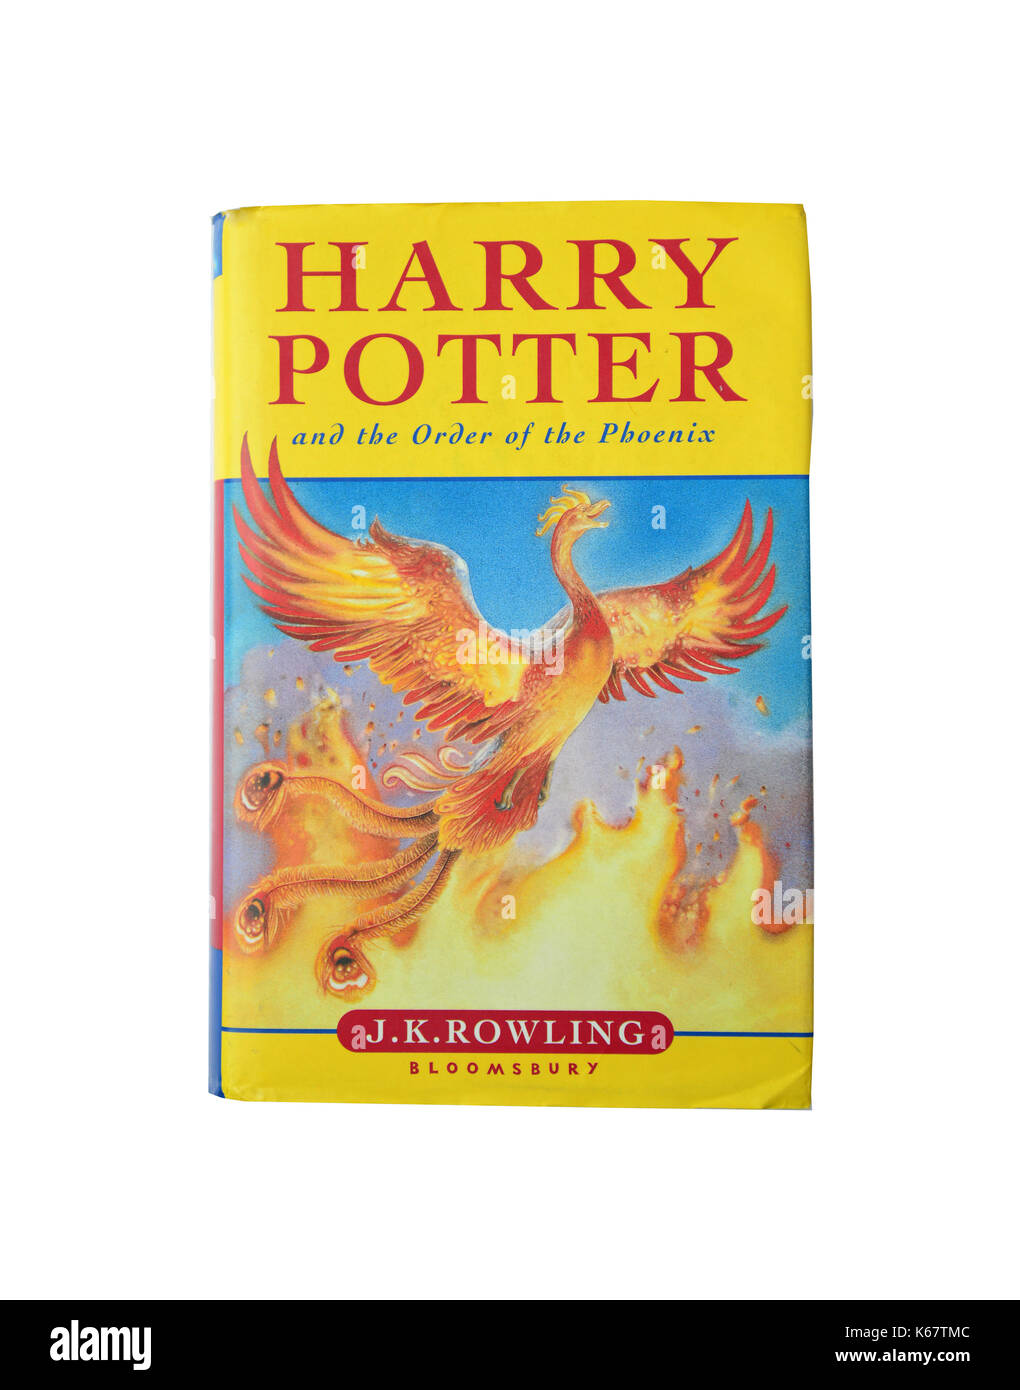 J.K.Rowling's 'Harry Potter and the Order of the Phoenix' book, Surrey, England, United Kingdom - Stock Image